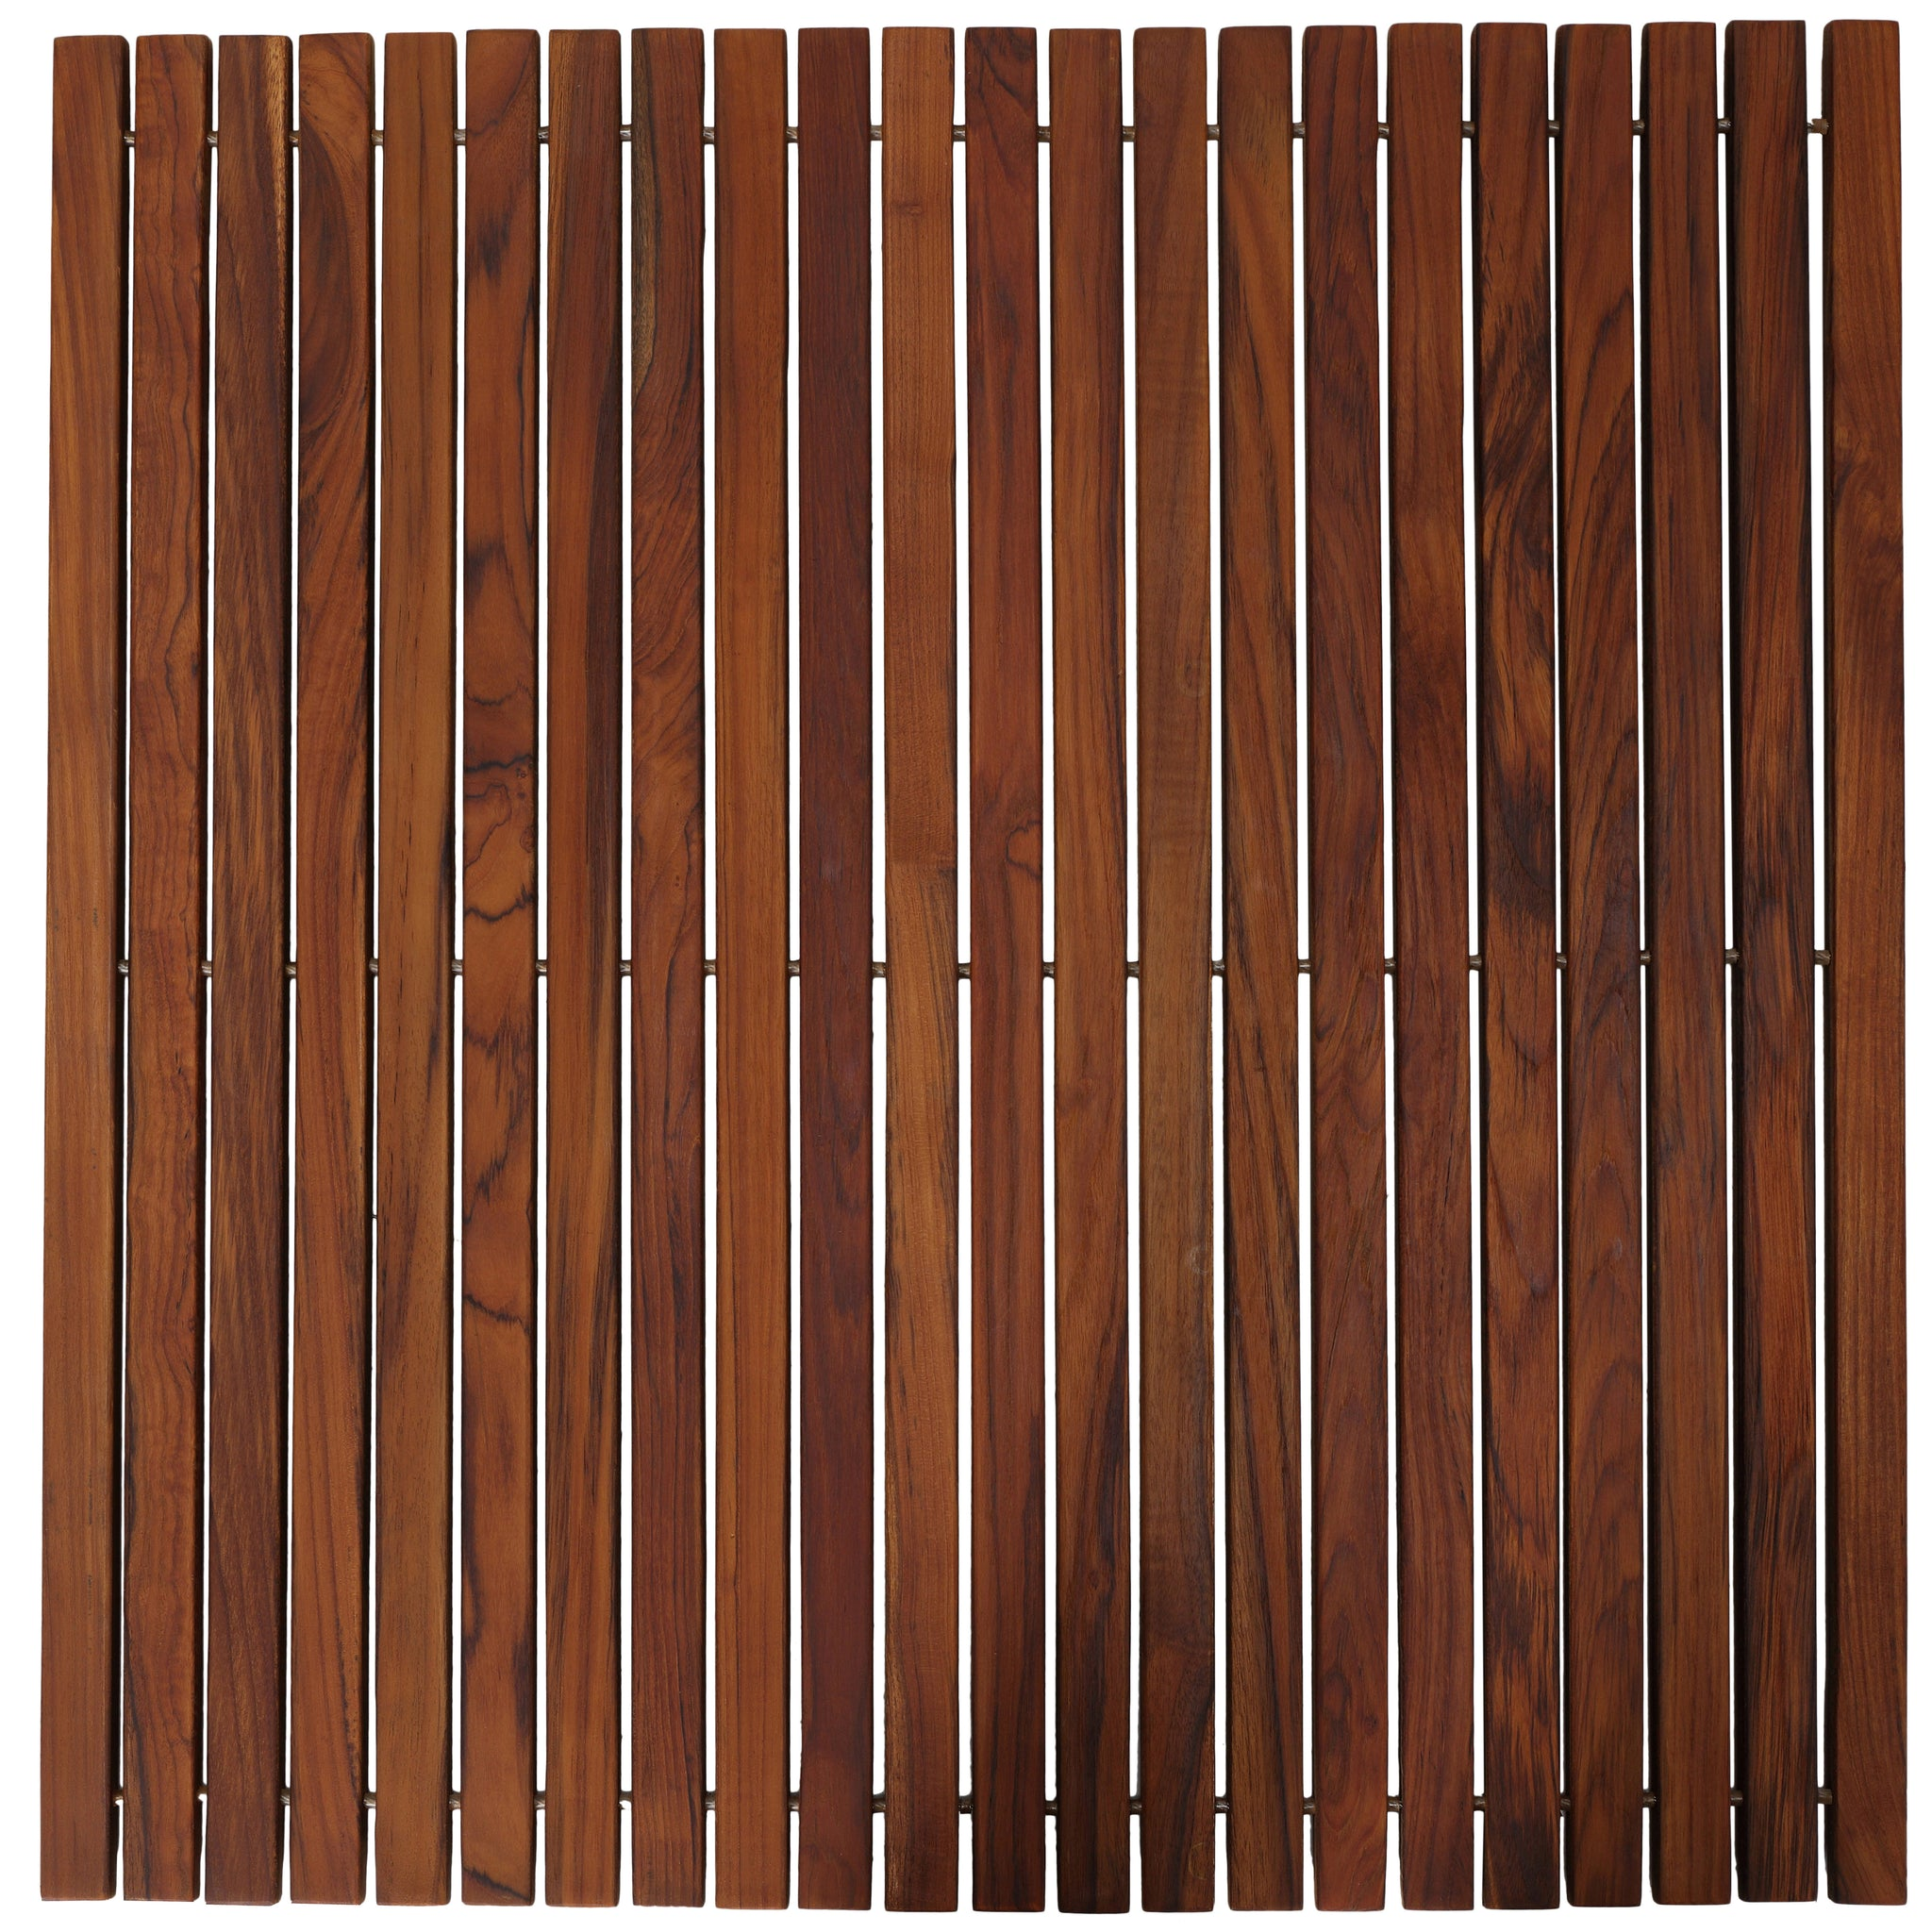 "Bare Decor Fuji String Spa Shower Mat in Solid Teak Wood Oiled Finish. XL Square 30"" x 30"""